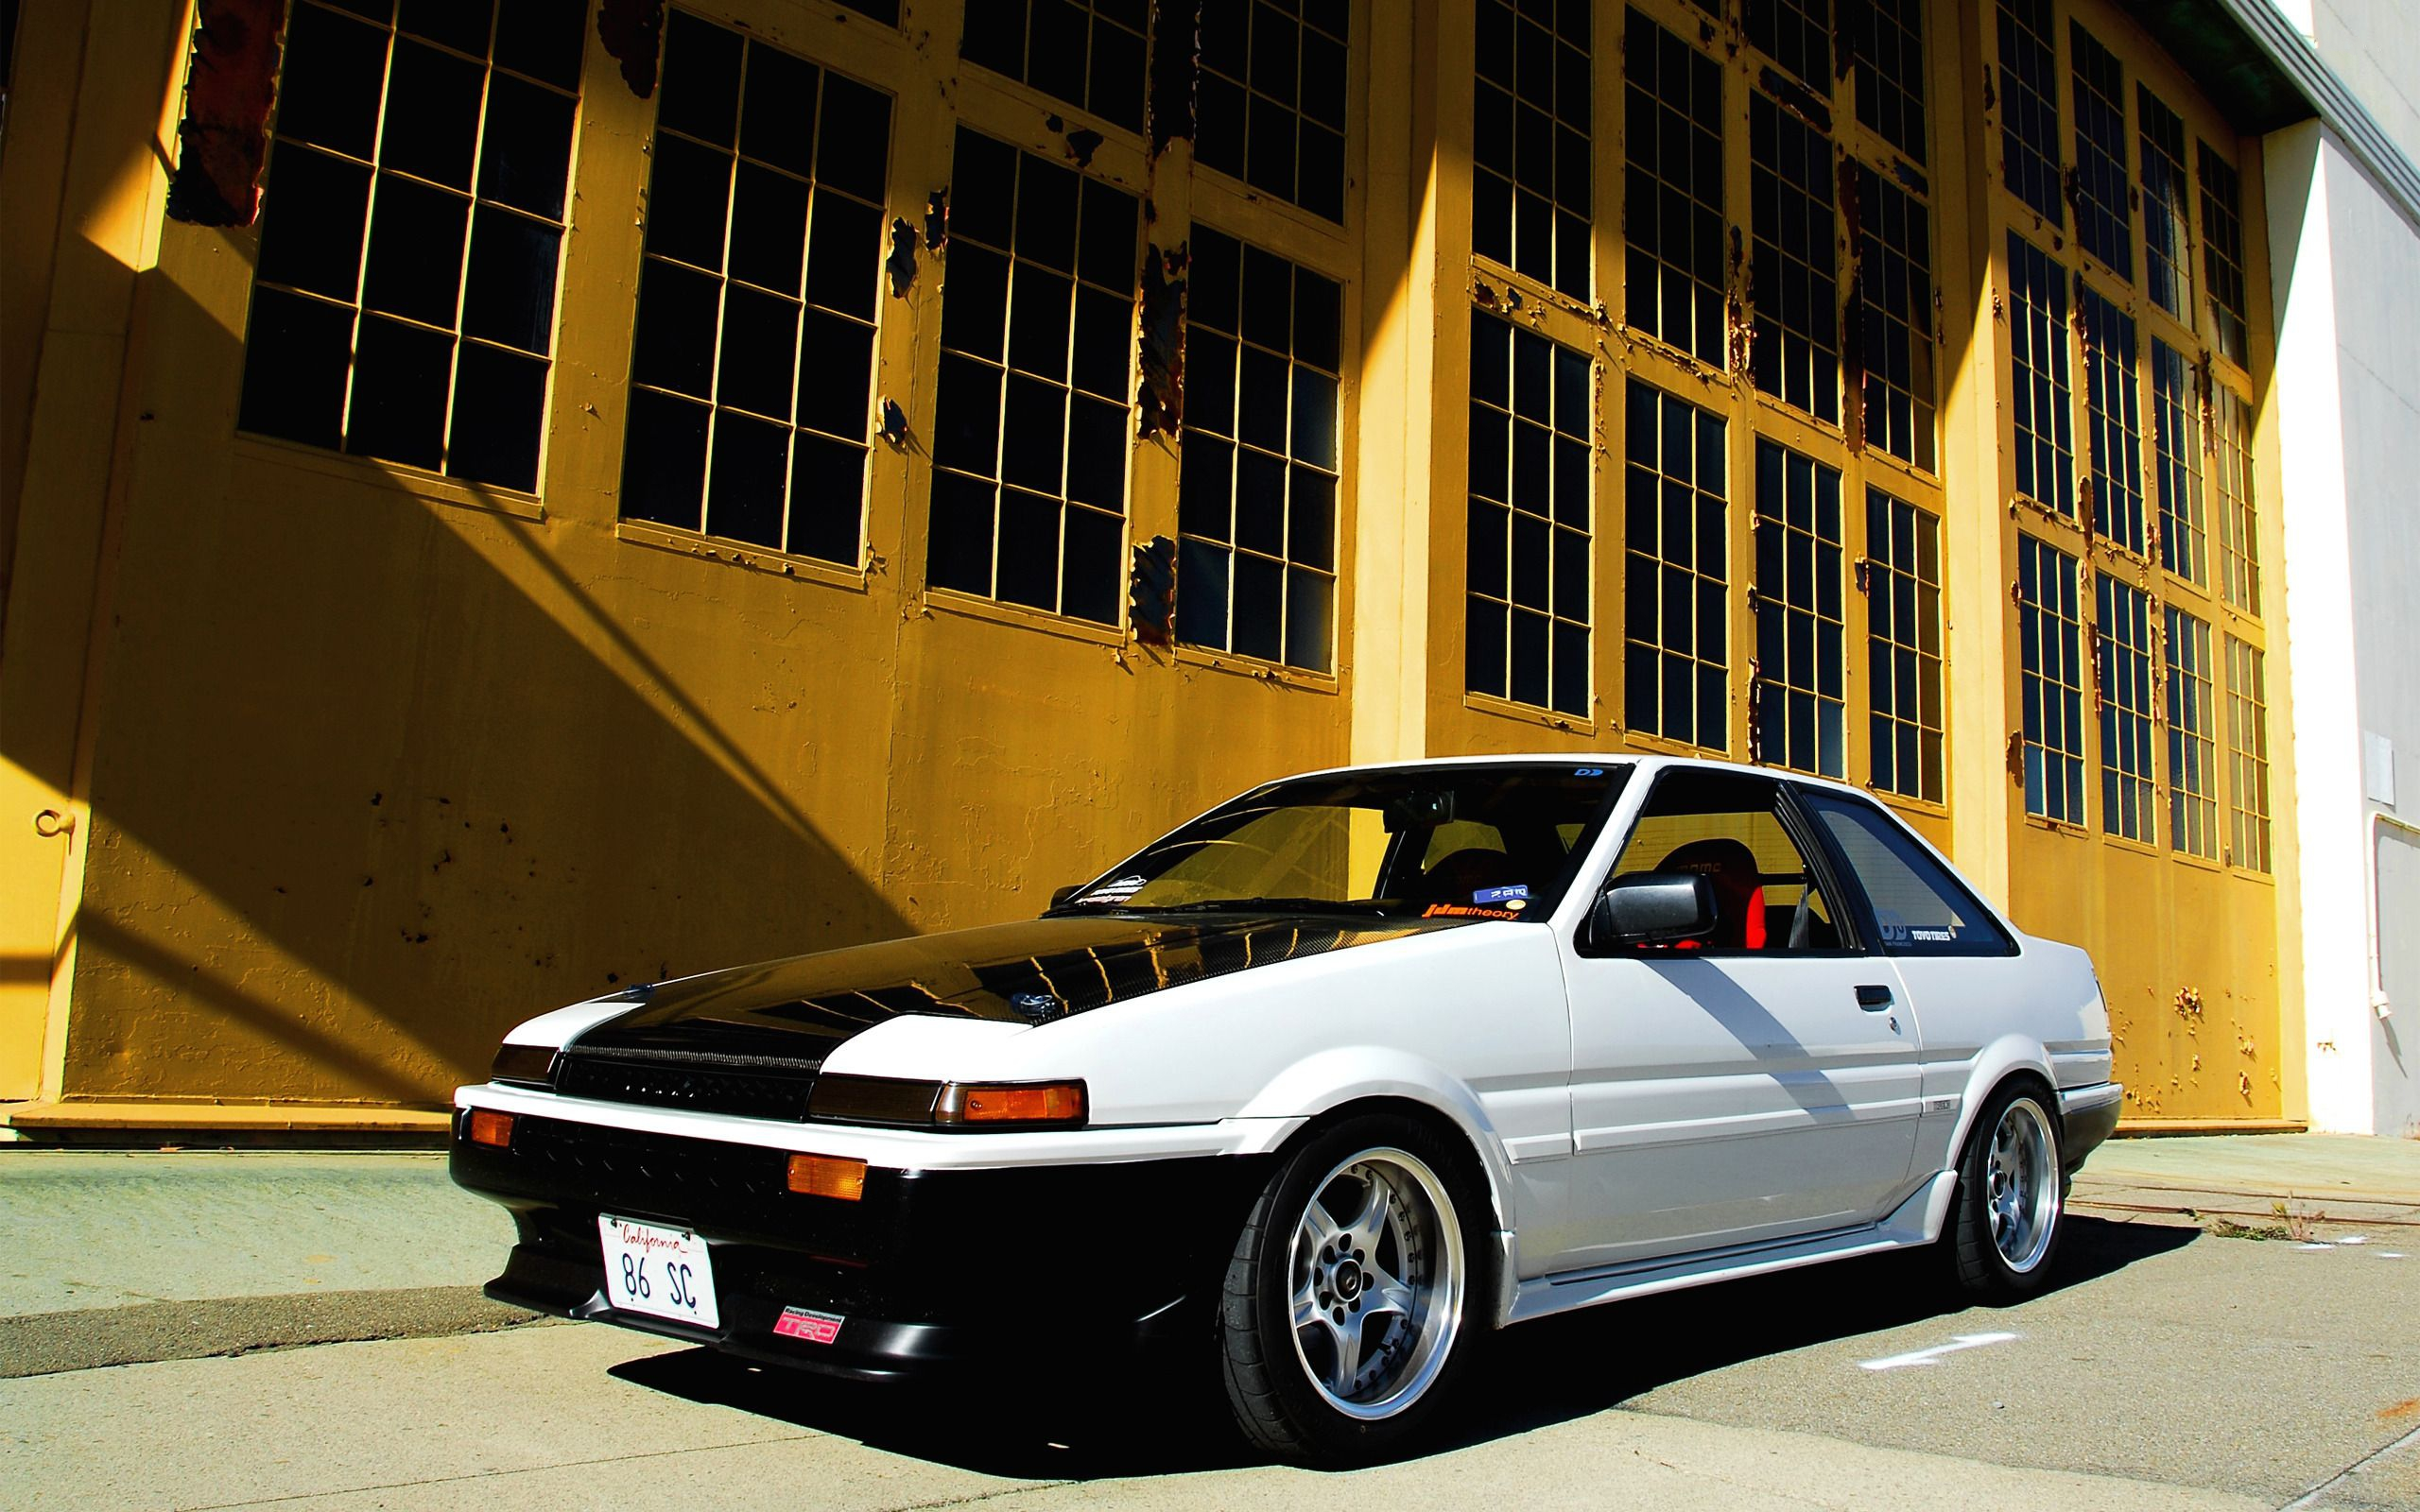 Free Country Fall Wallpaper Toyota Corolla Ae86 Background Free Download Pixelstalk Net